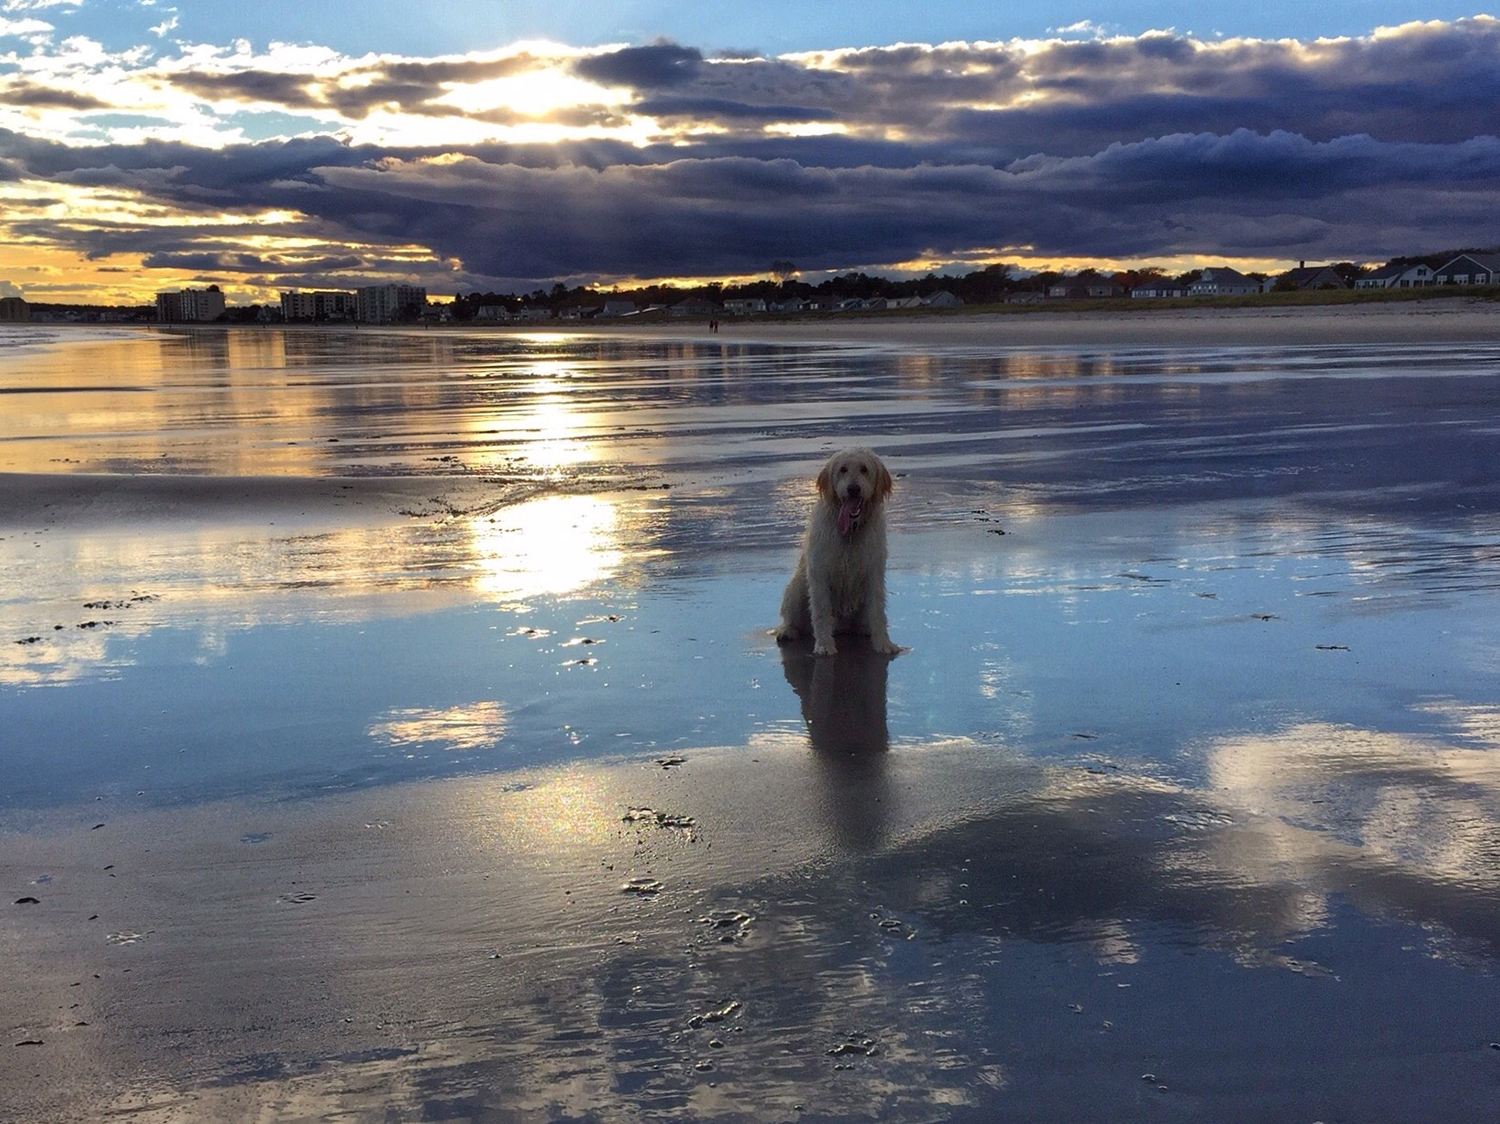 Don't let the sun go down on me, the dog seems to be singing to Carol Hill as late afternoon soon gives way to dusk at Pine Point in Scarborough.